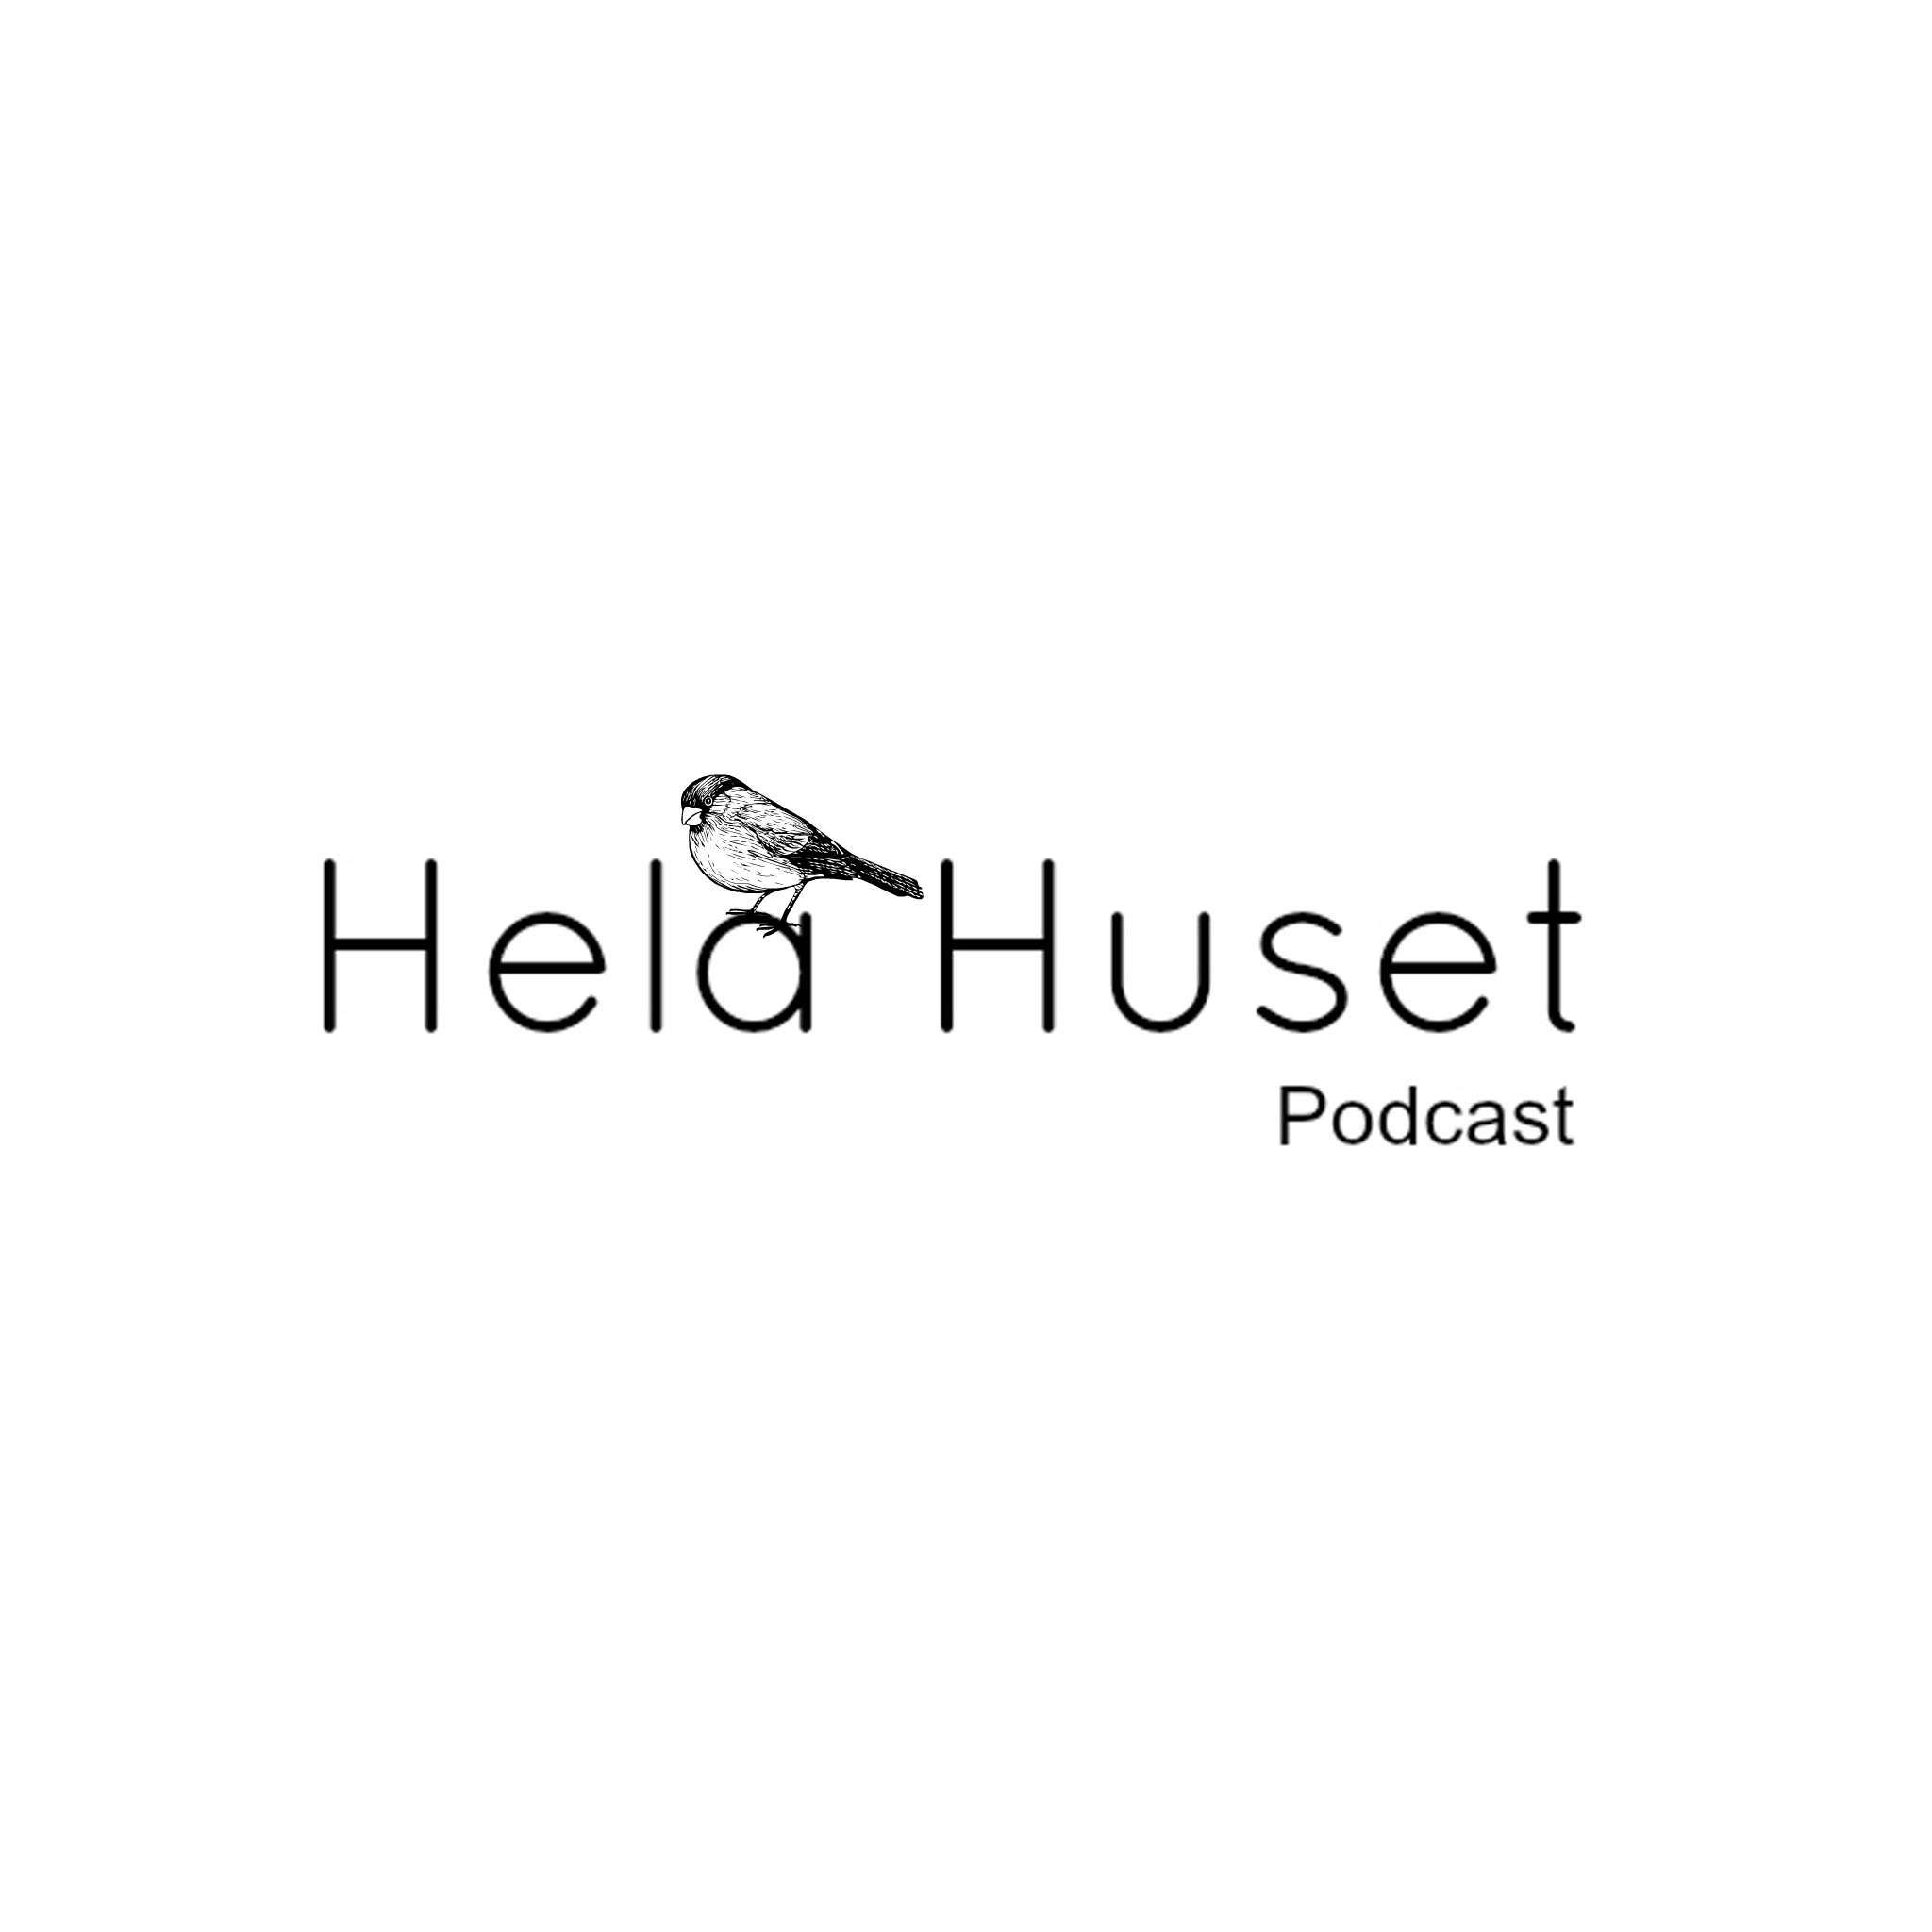 HelaHuset - Podcast